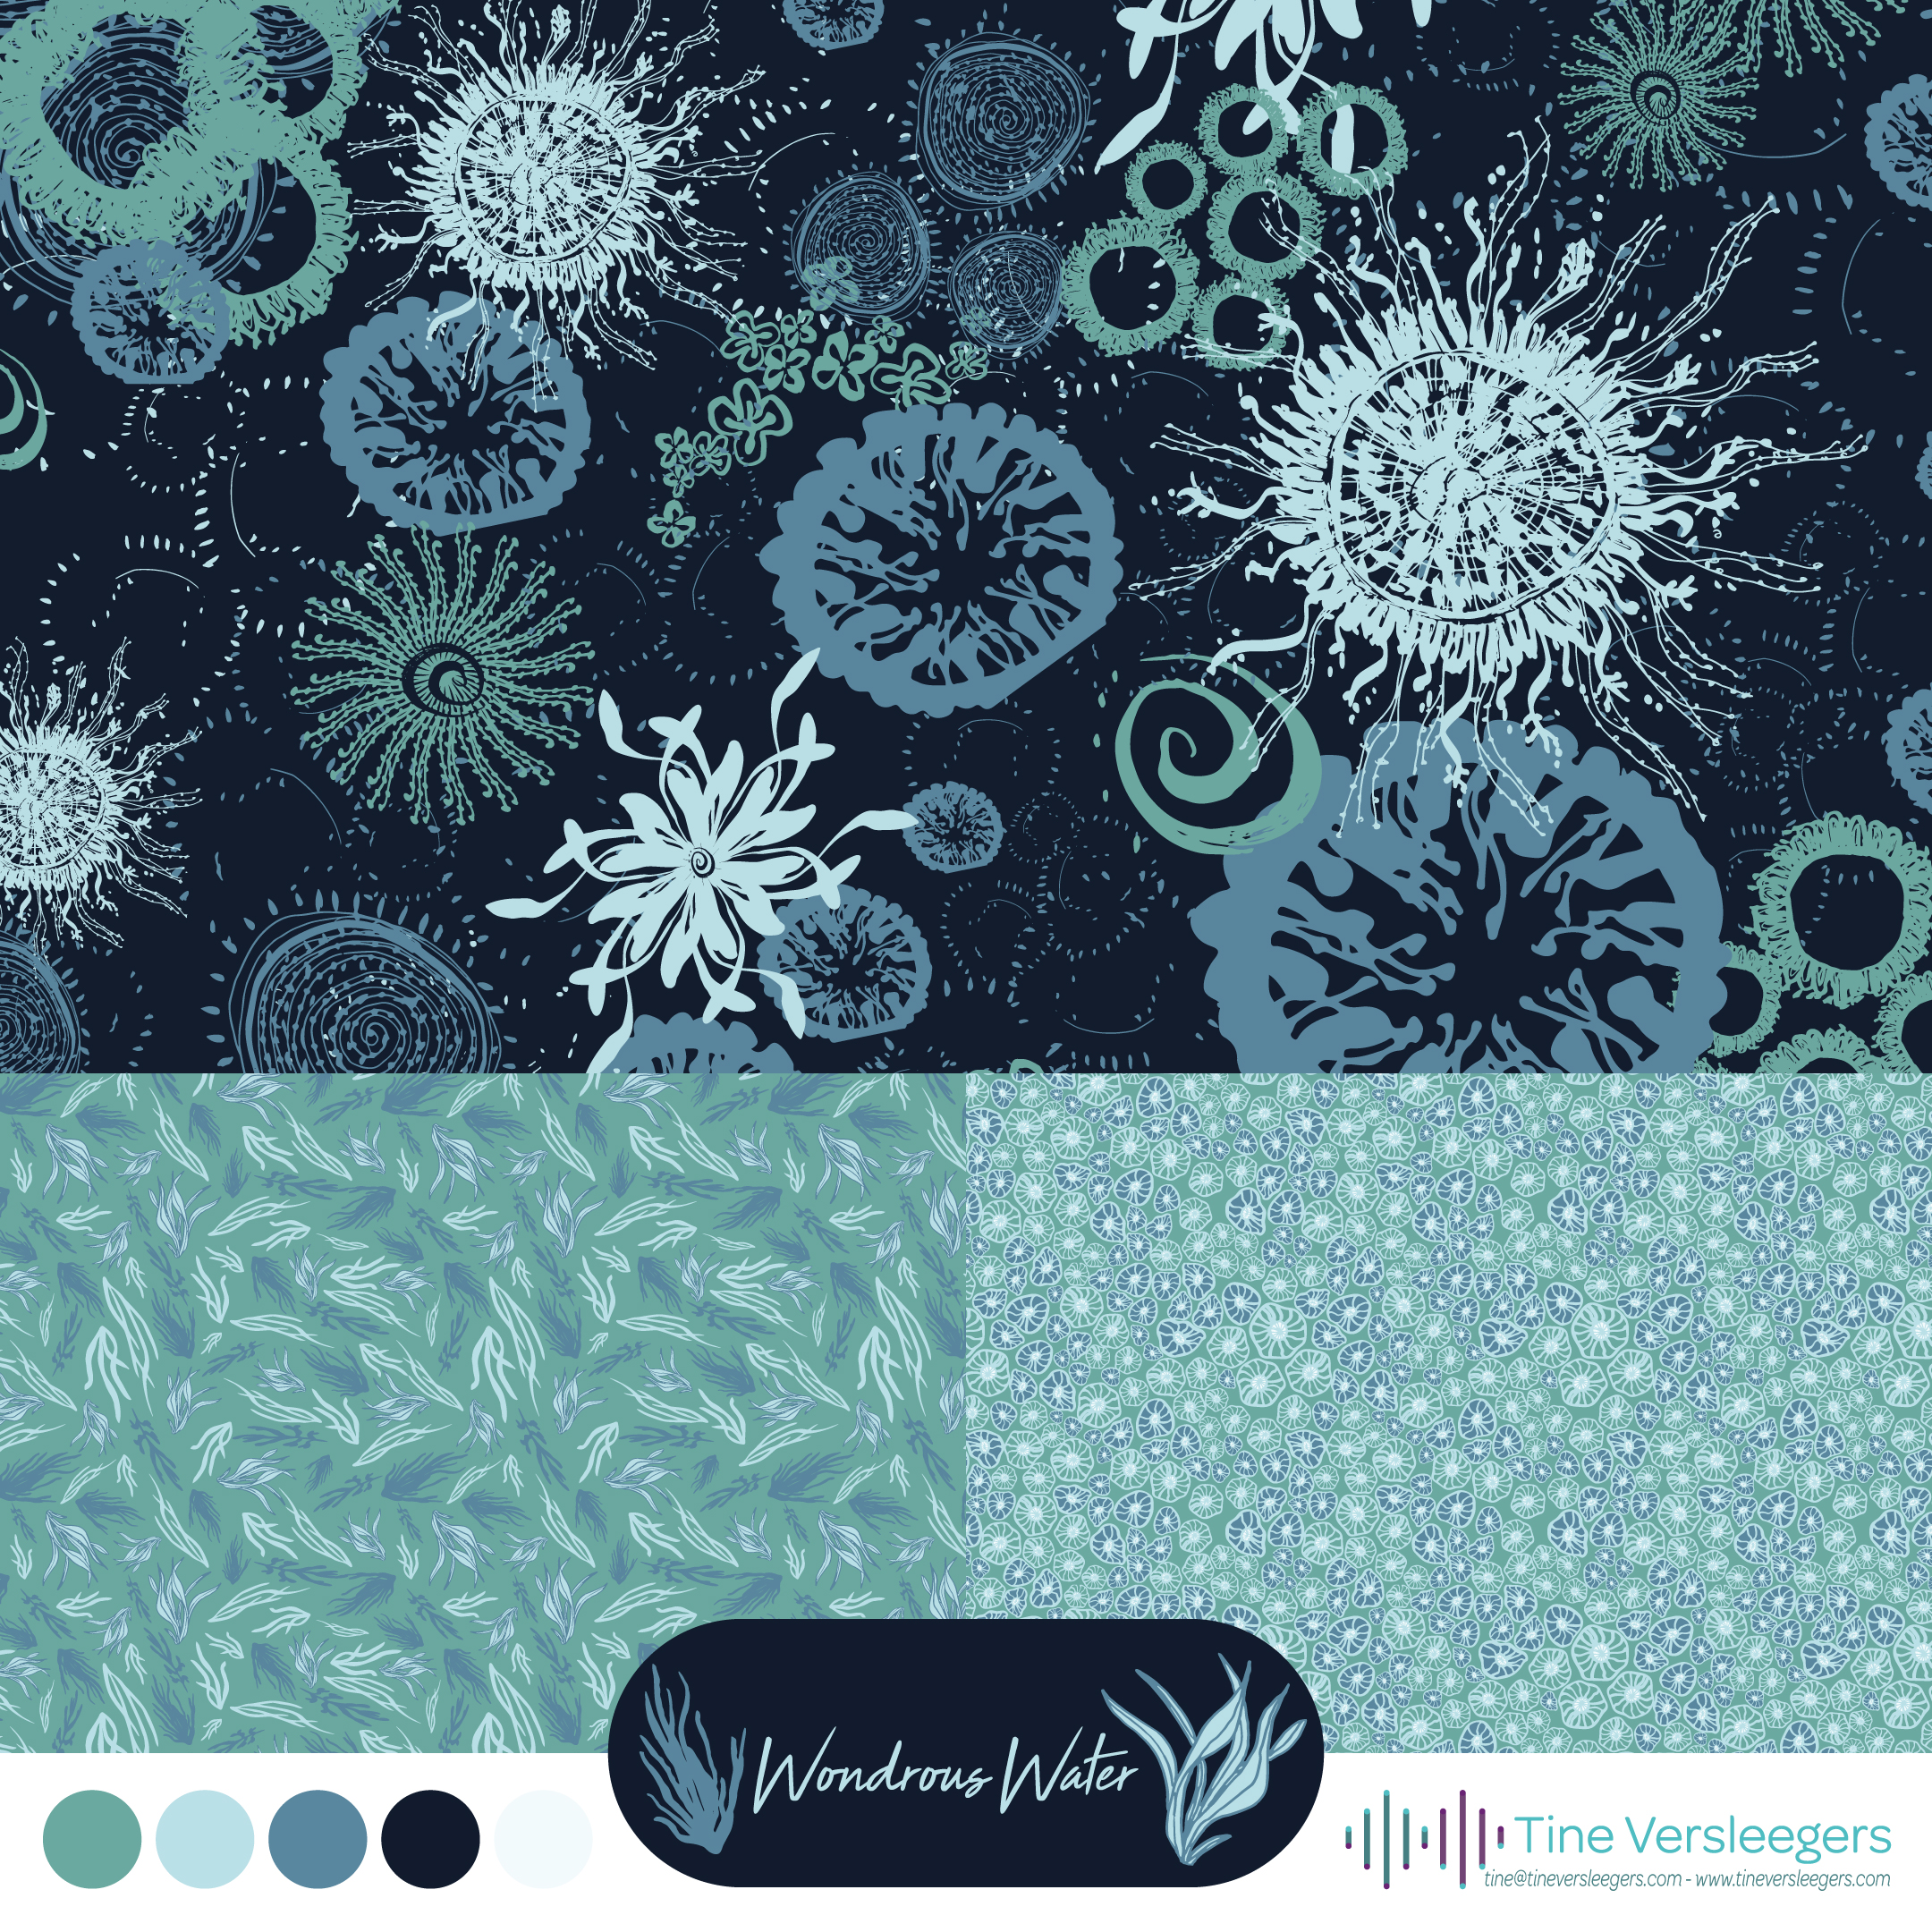 The collection Wondrous Water is inspired by the sea and features wonderful patterns in blue, teal and mint.